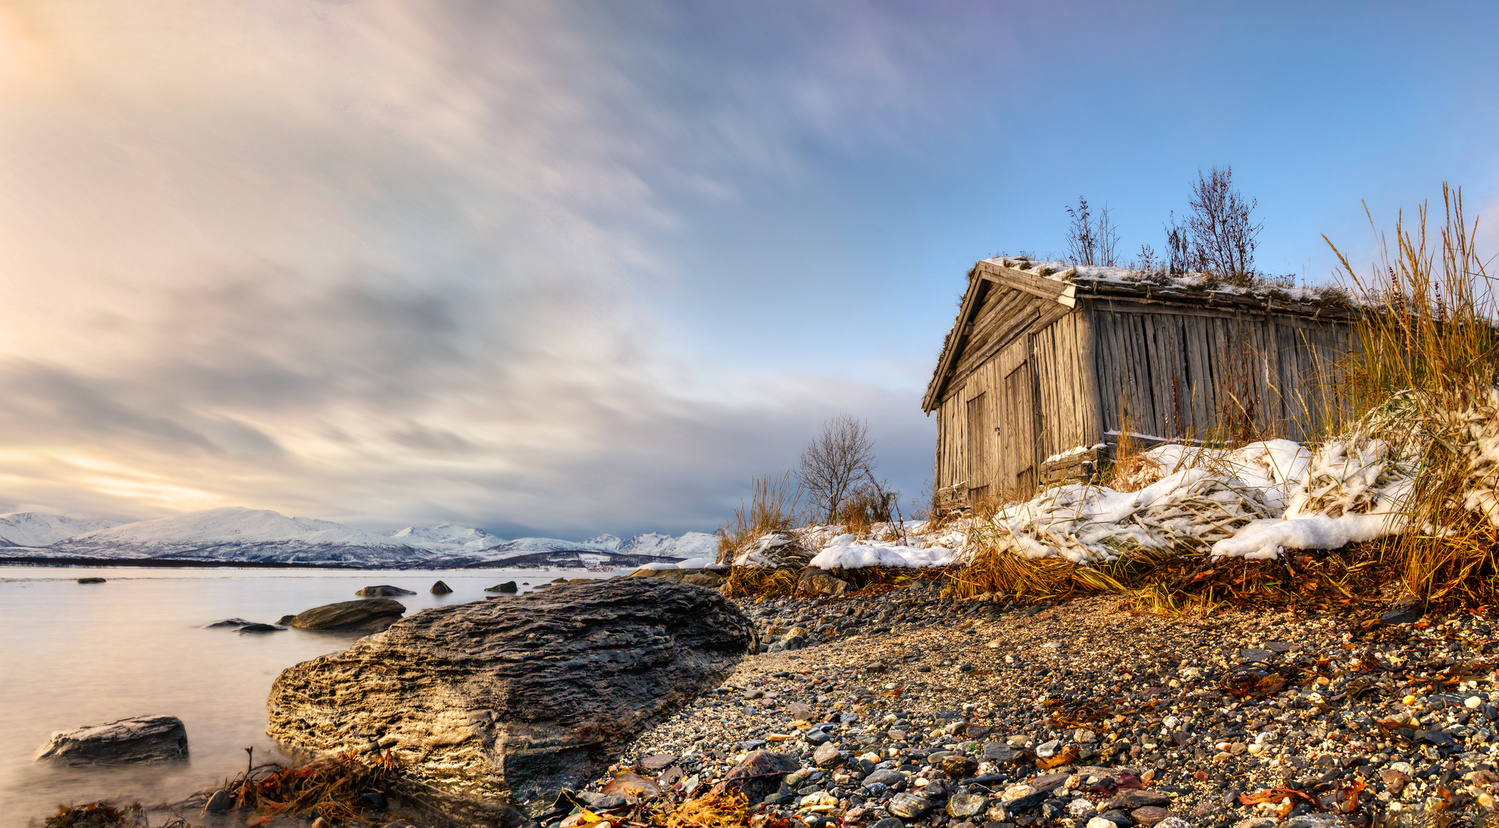 Abandoned cabin at sea side by Amirun Bisoyi